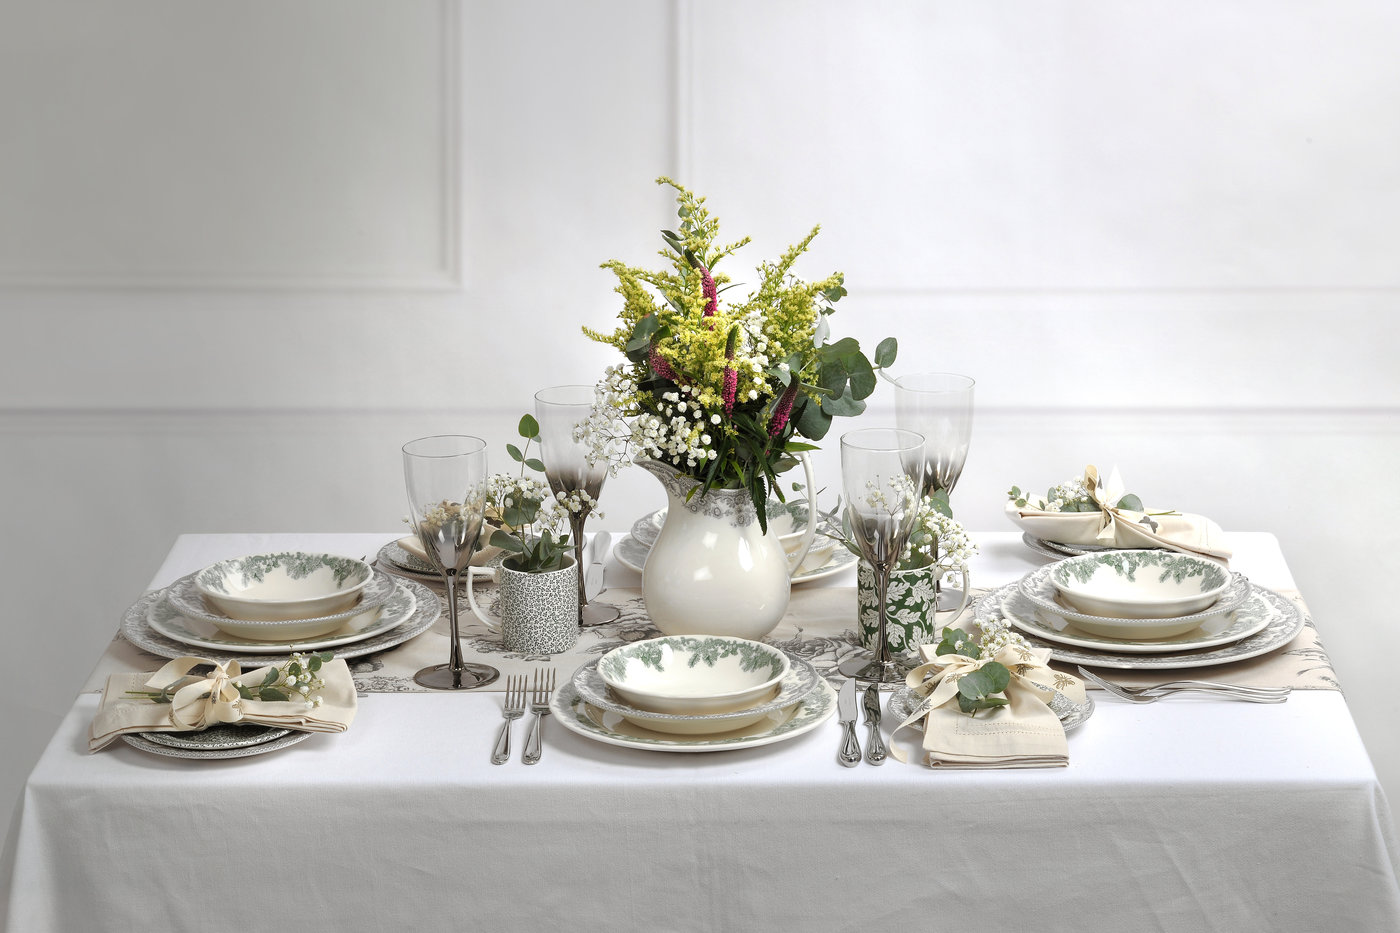 RUSKIN VIE TABLE SETTING